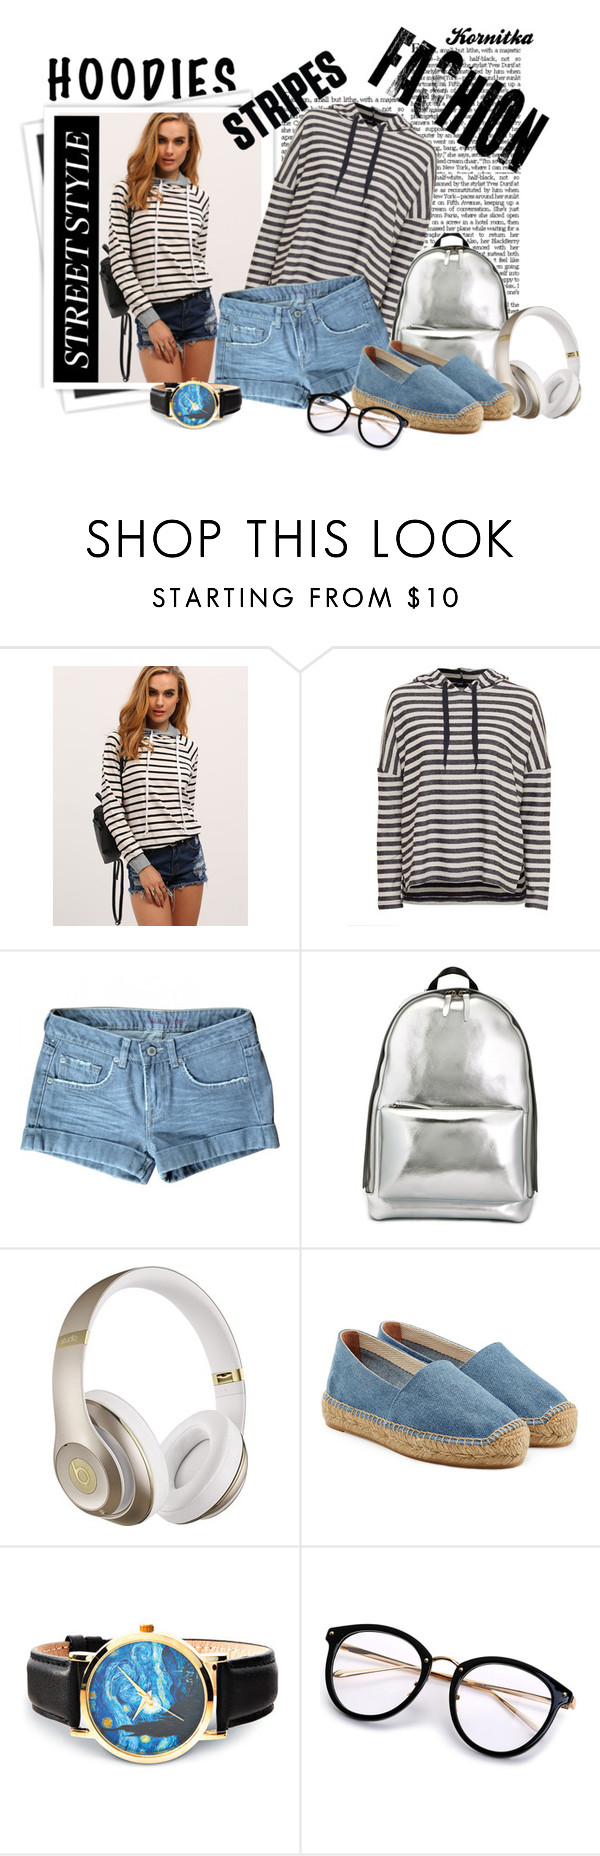 """hoodies"" by kornitka ❤ liked on Polyvore featuring GALA, Paul & Joe, 3.1 Phillip Lim, Beats by Dr. Dre and Castañer"